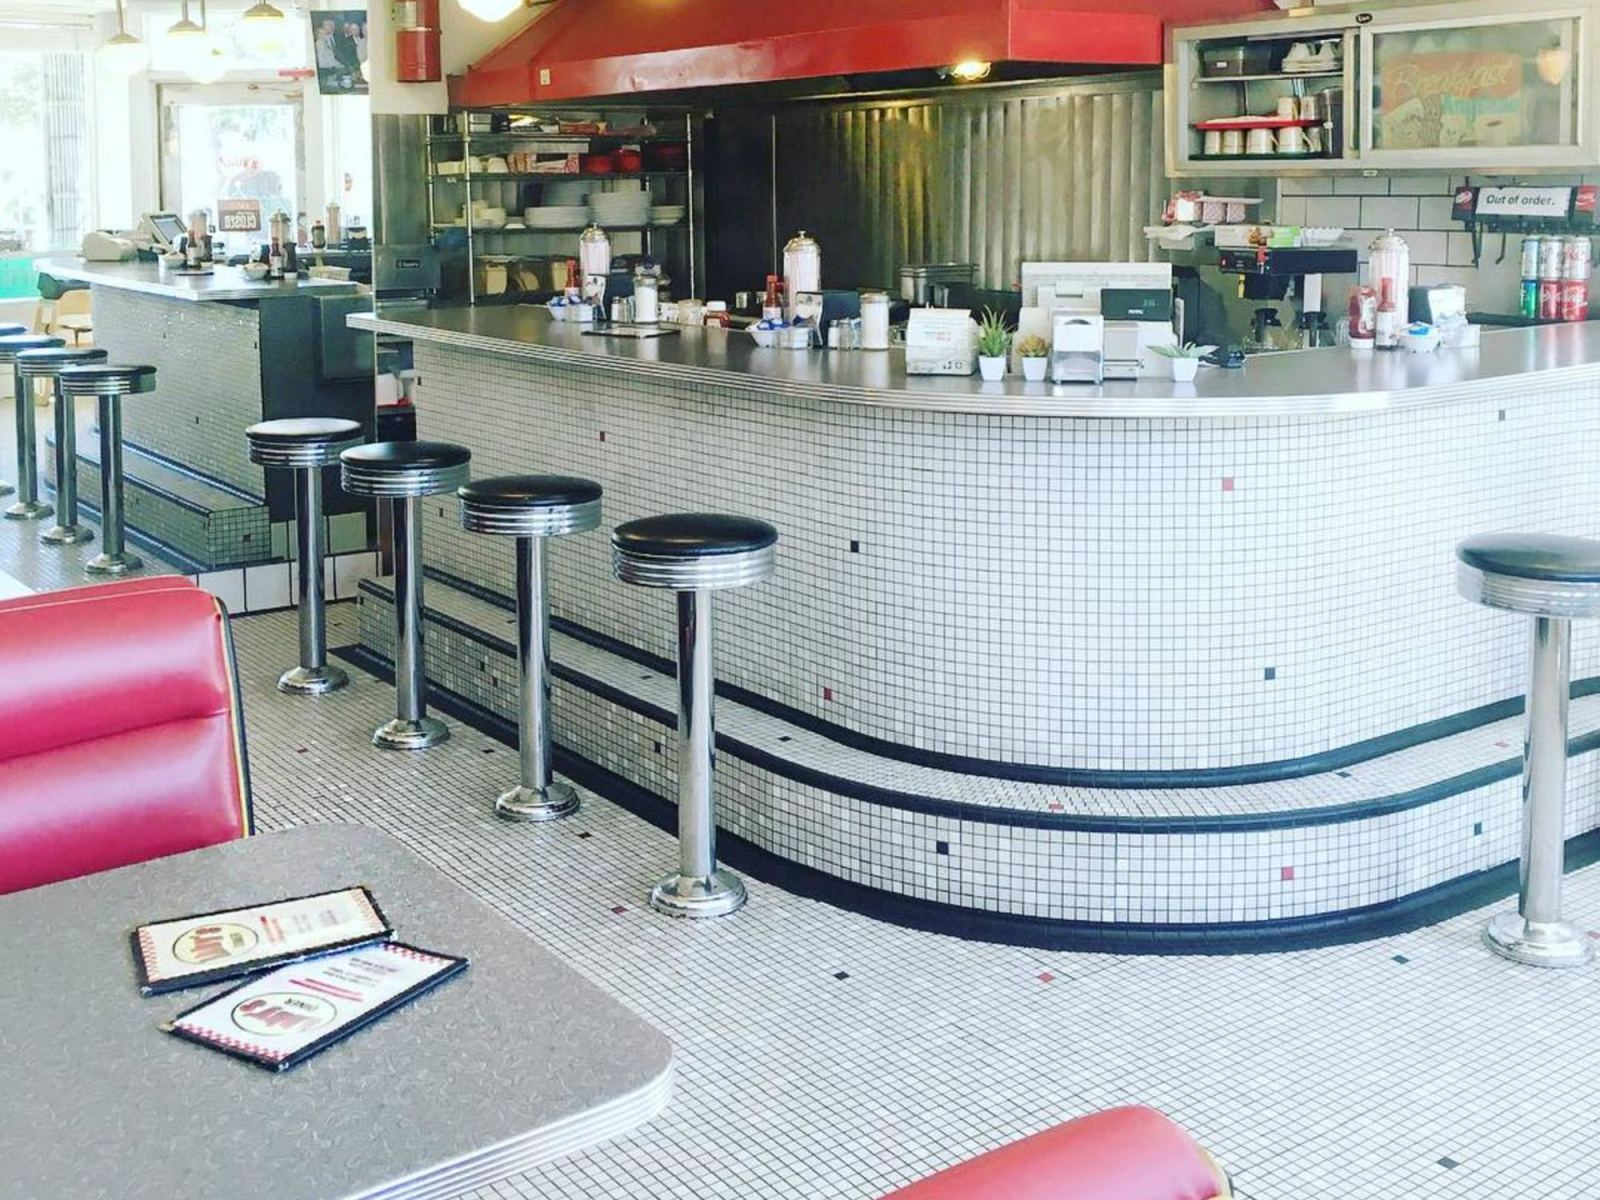 Abby's Diner